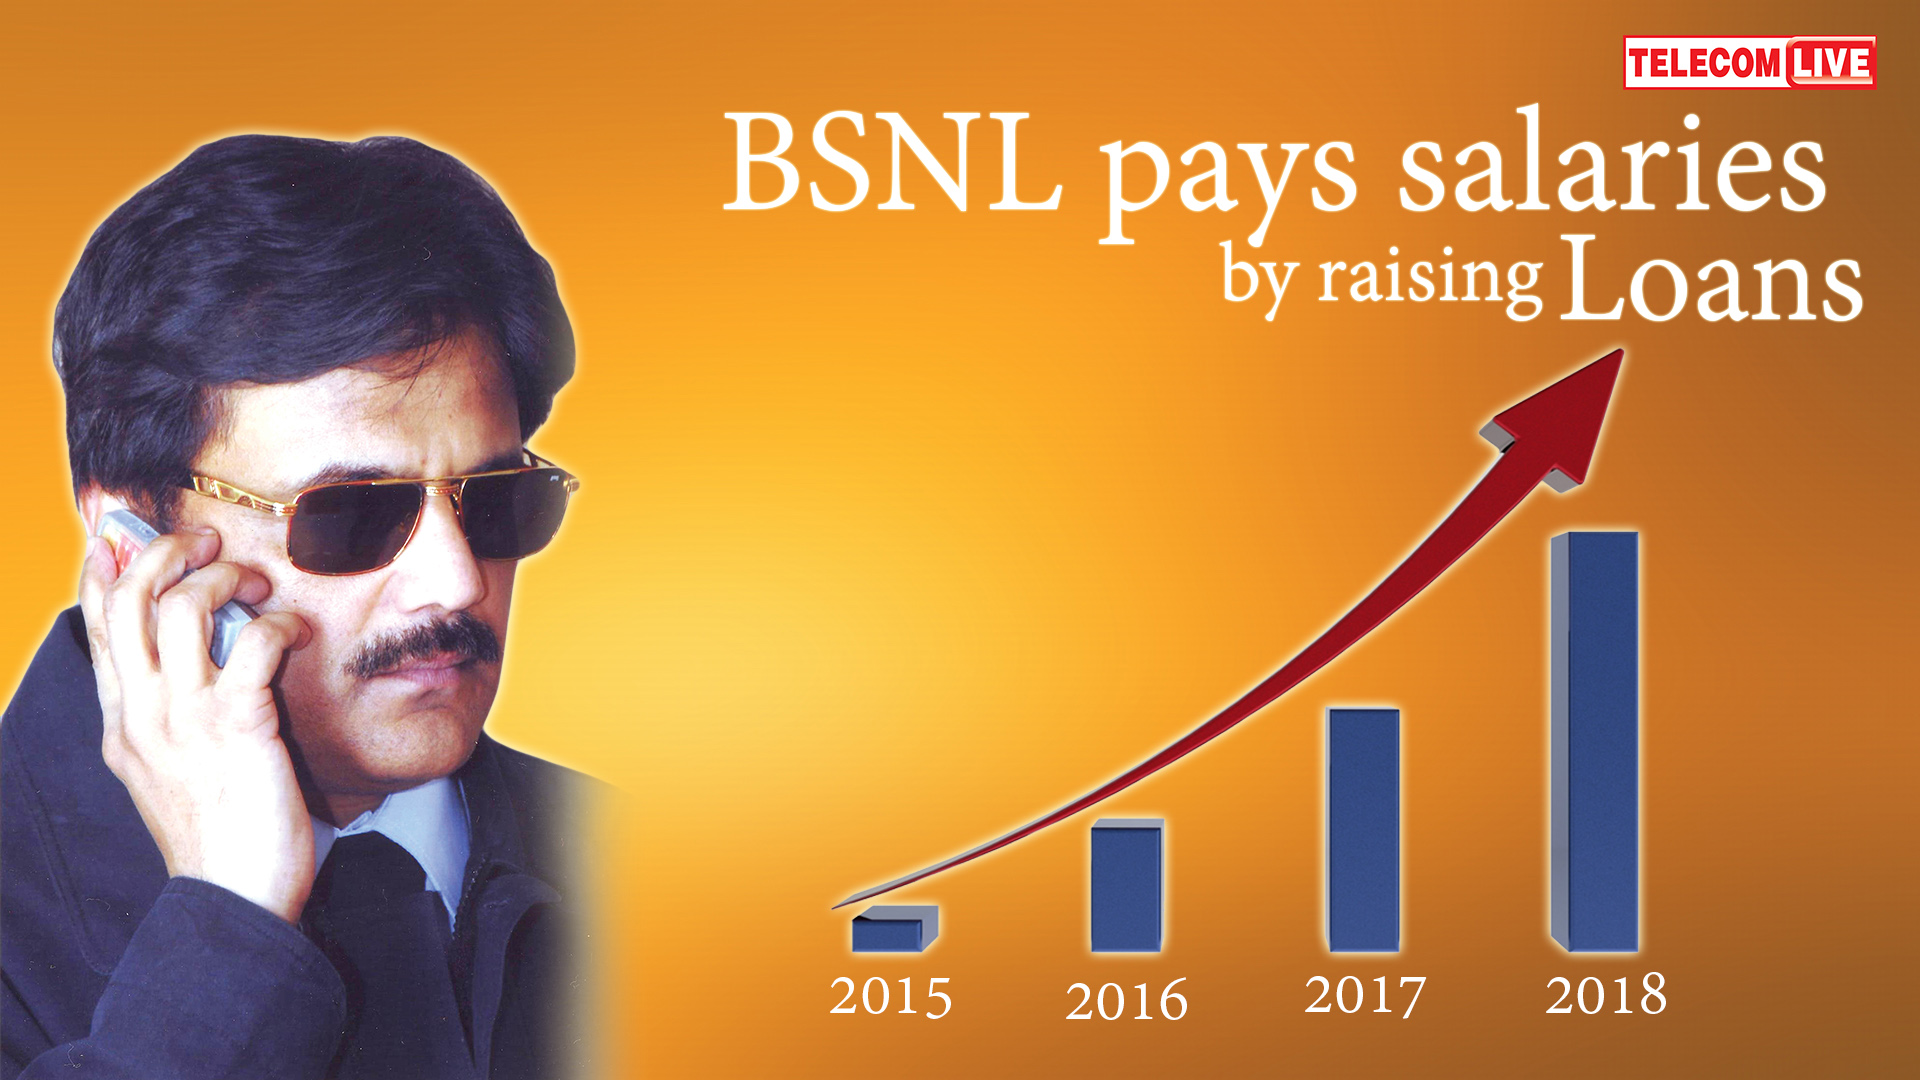 BSNL pays salaries by raising loans - Rs 10,000 cr in 4 years